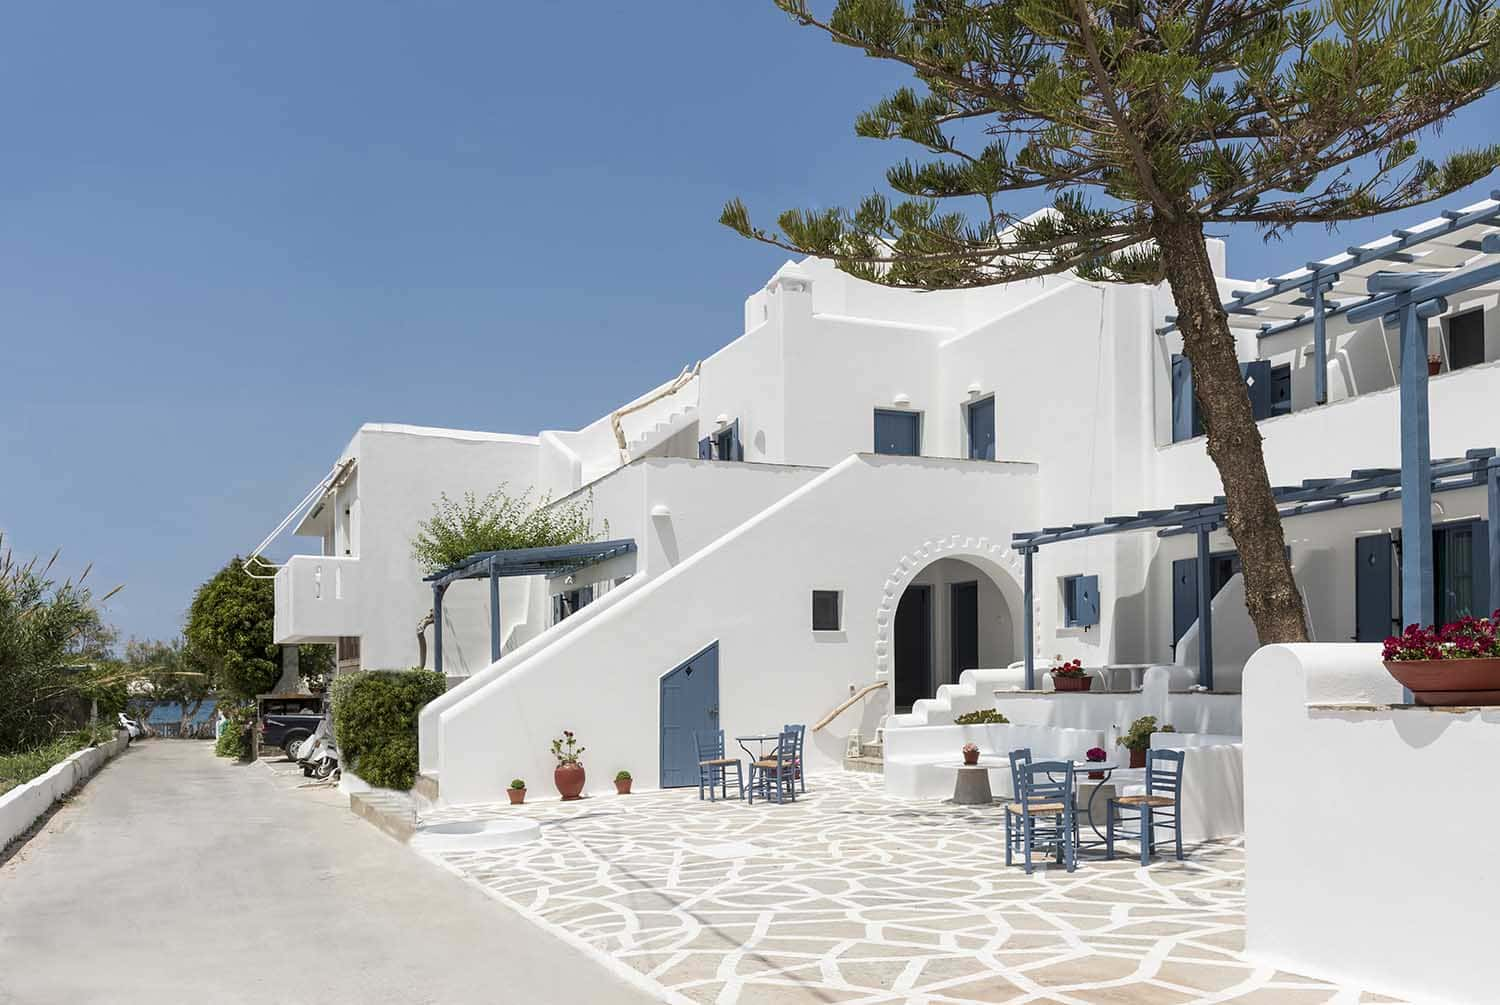 paros rooms for rent paros greece rooms to let apartments paros studios parikia magginas studios  accommodation hotels vacation beach home pic 1